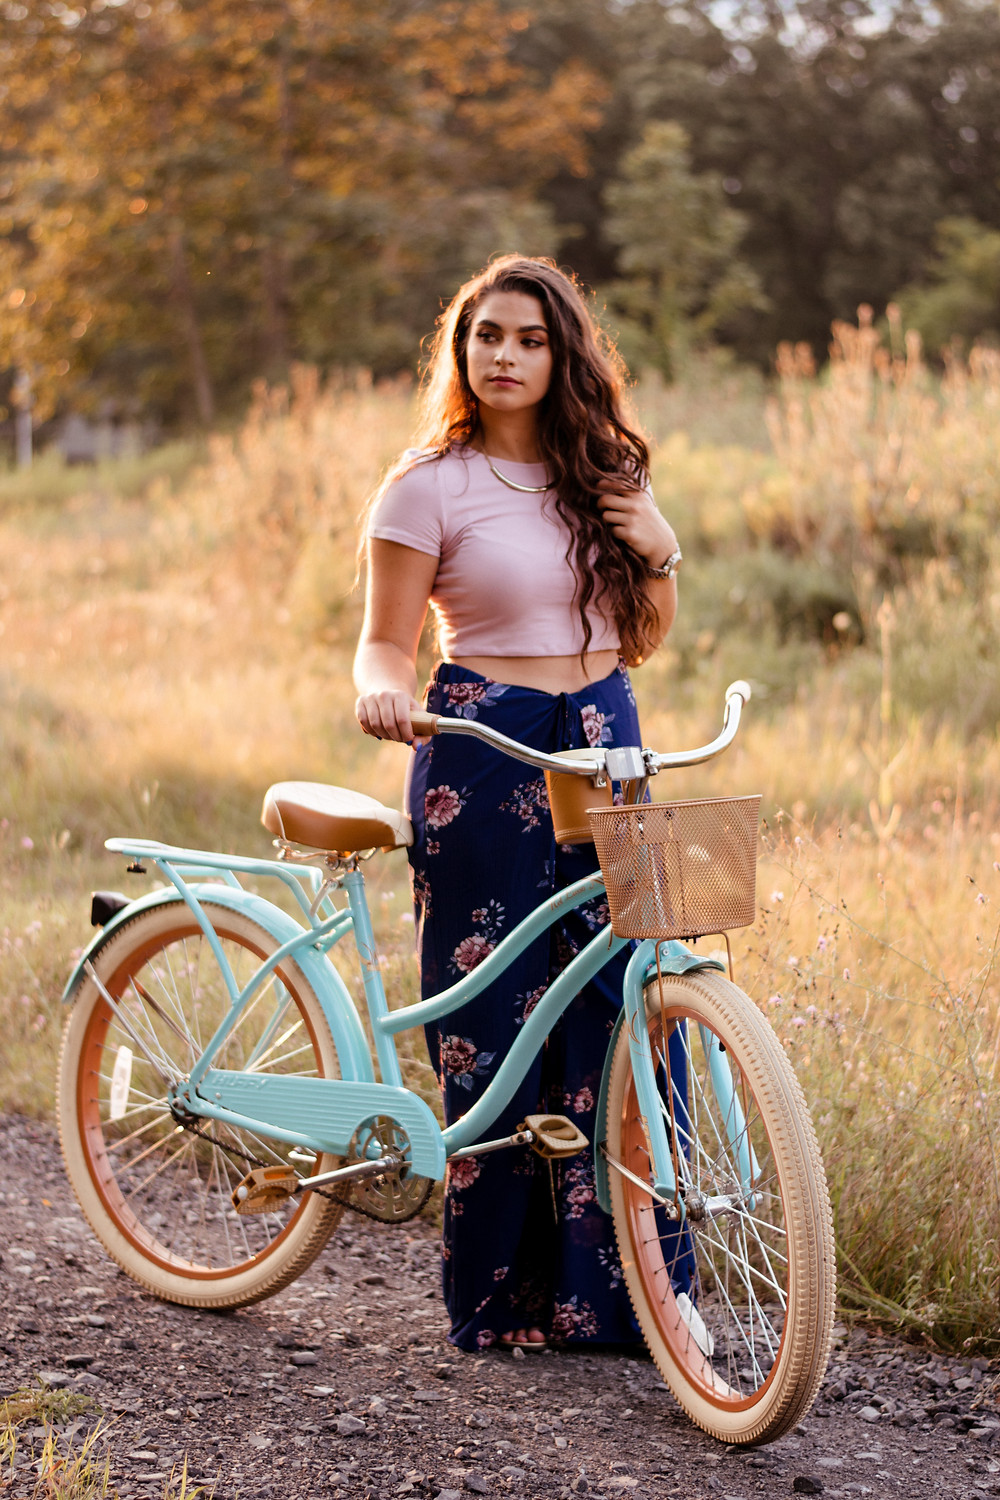 senior session, sunny, senior poses, senior portrait, senior portrait photographer, golden hour, vintage bike